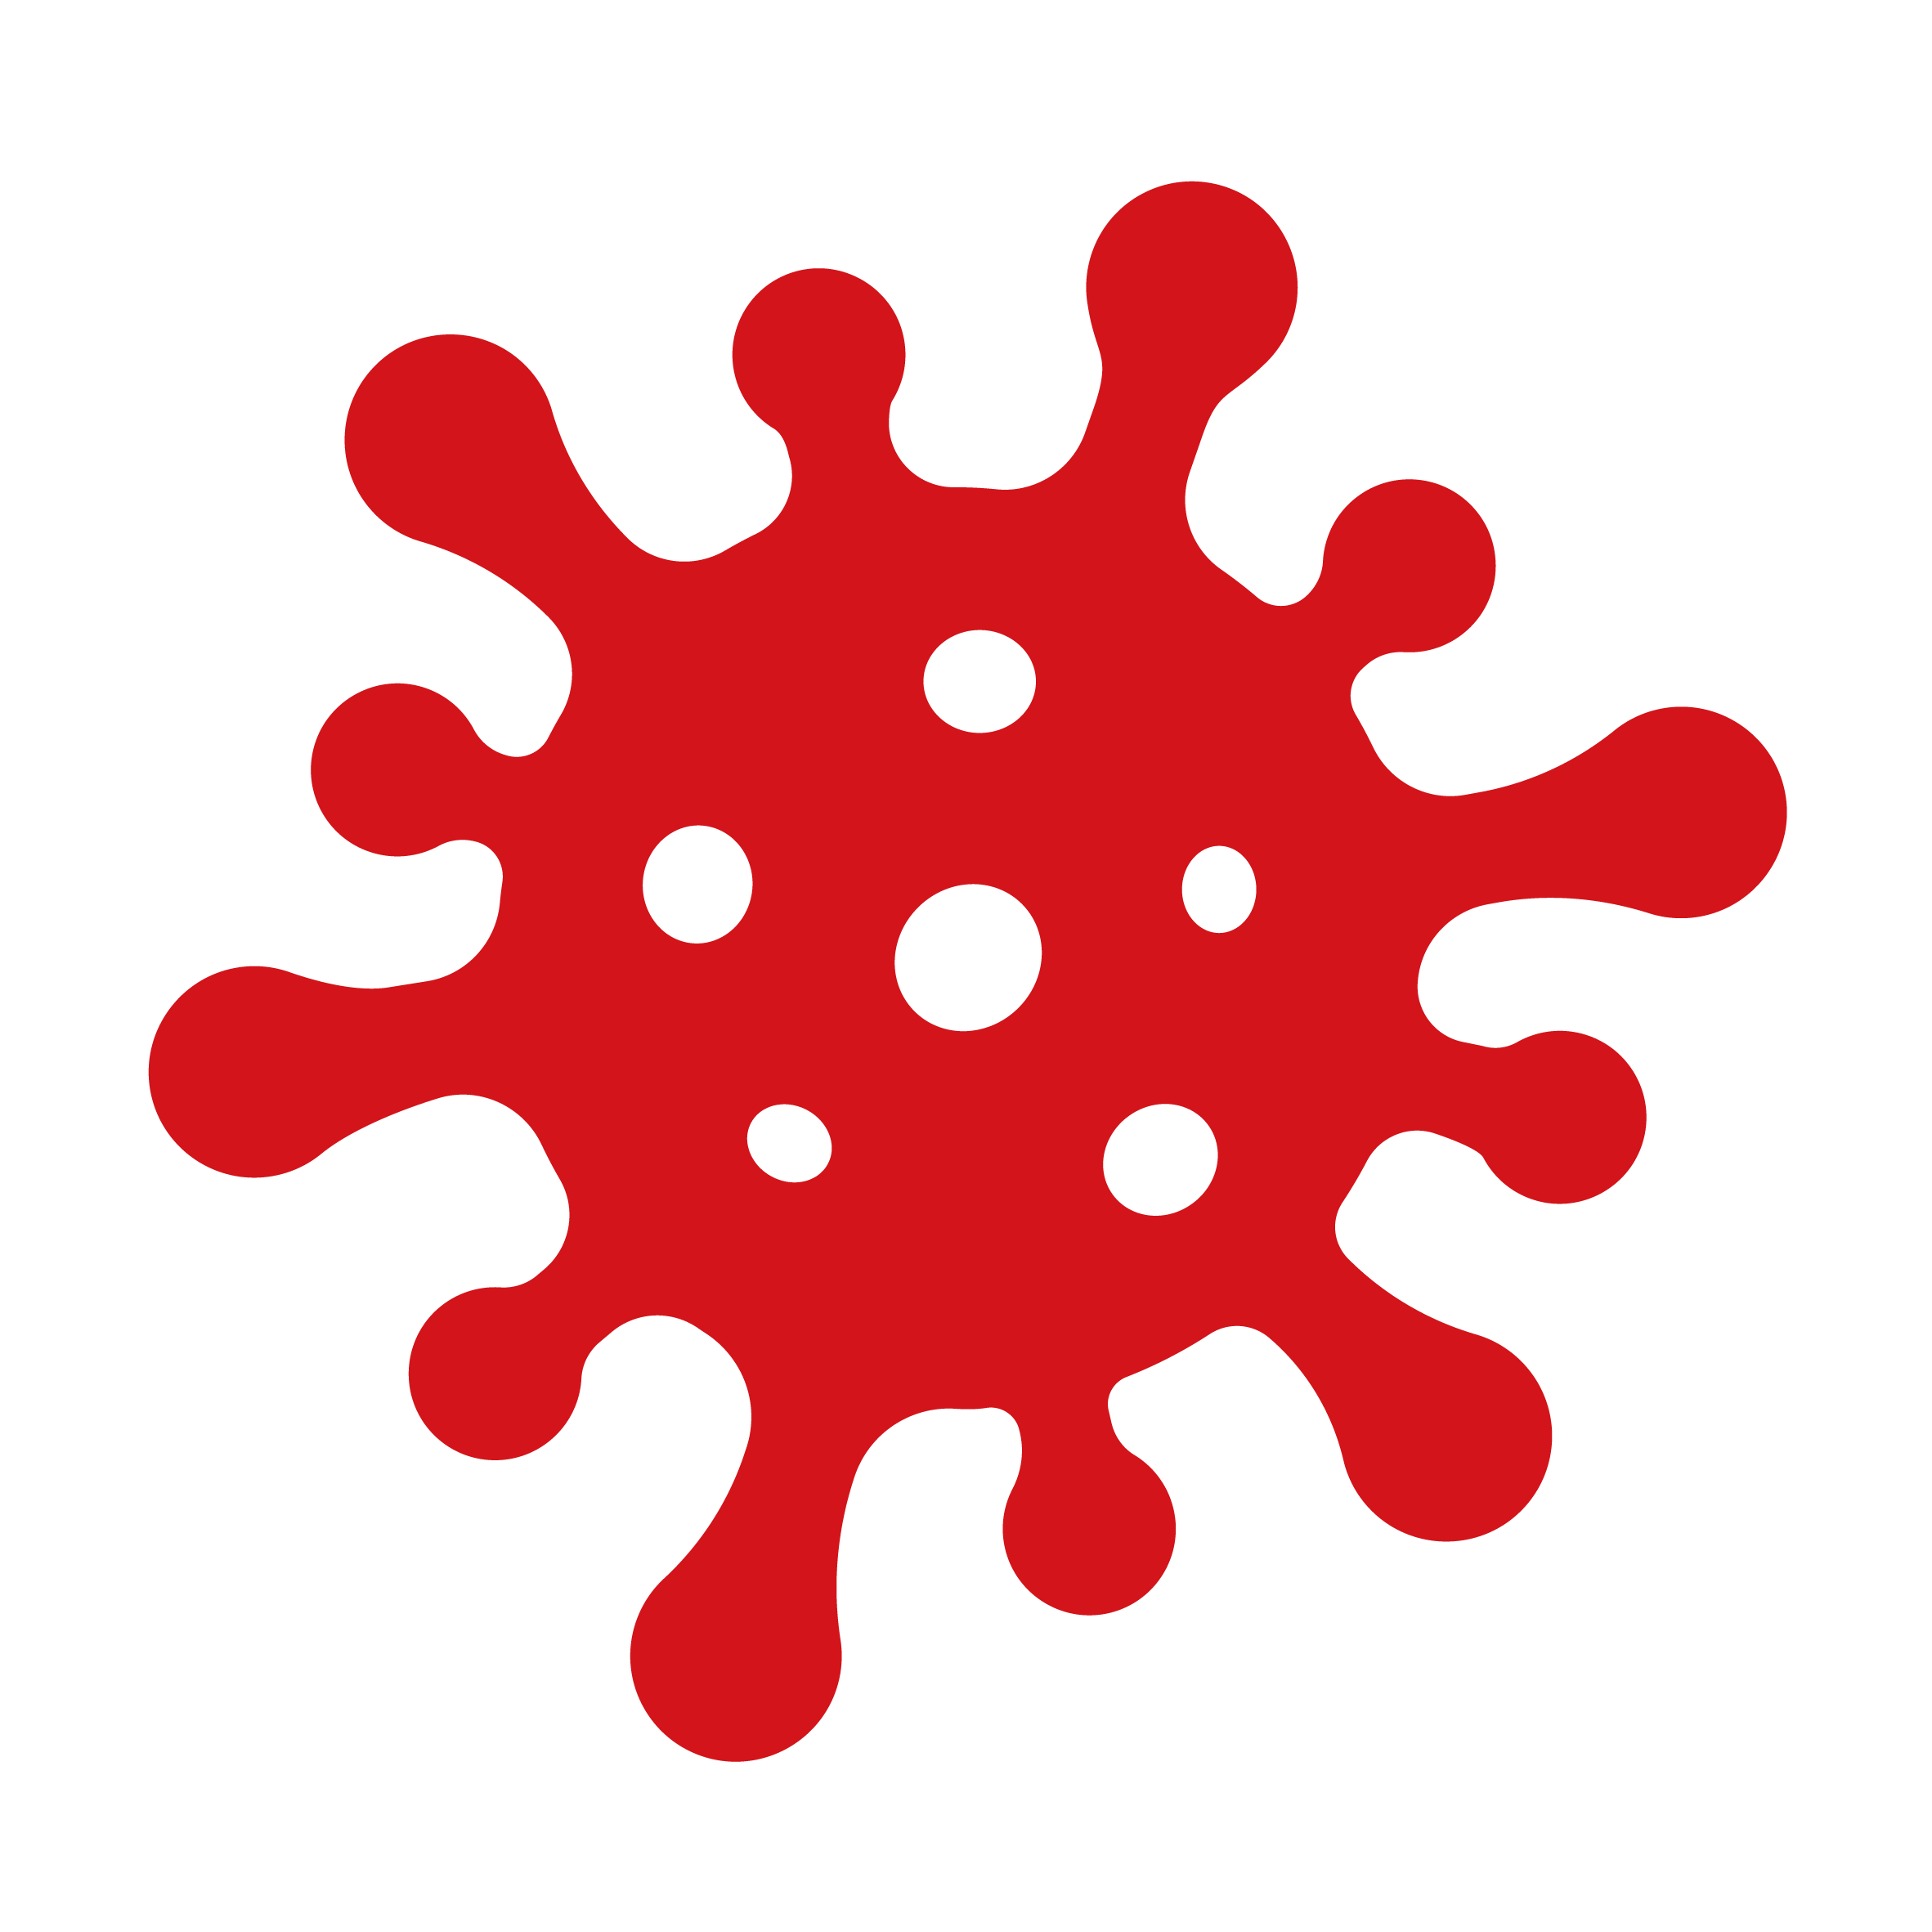 Infectious substance icon